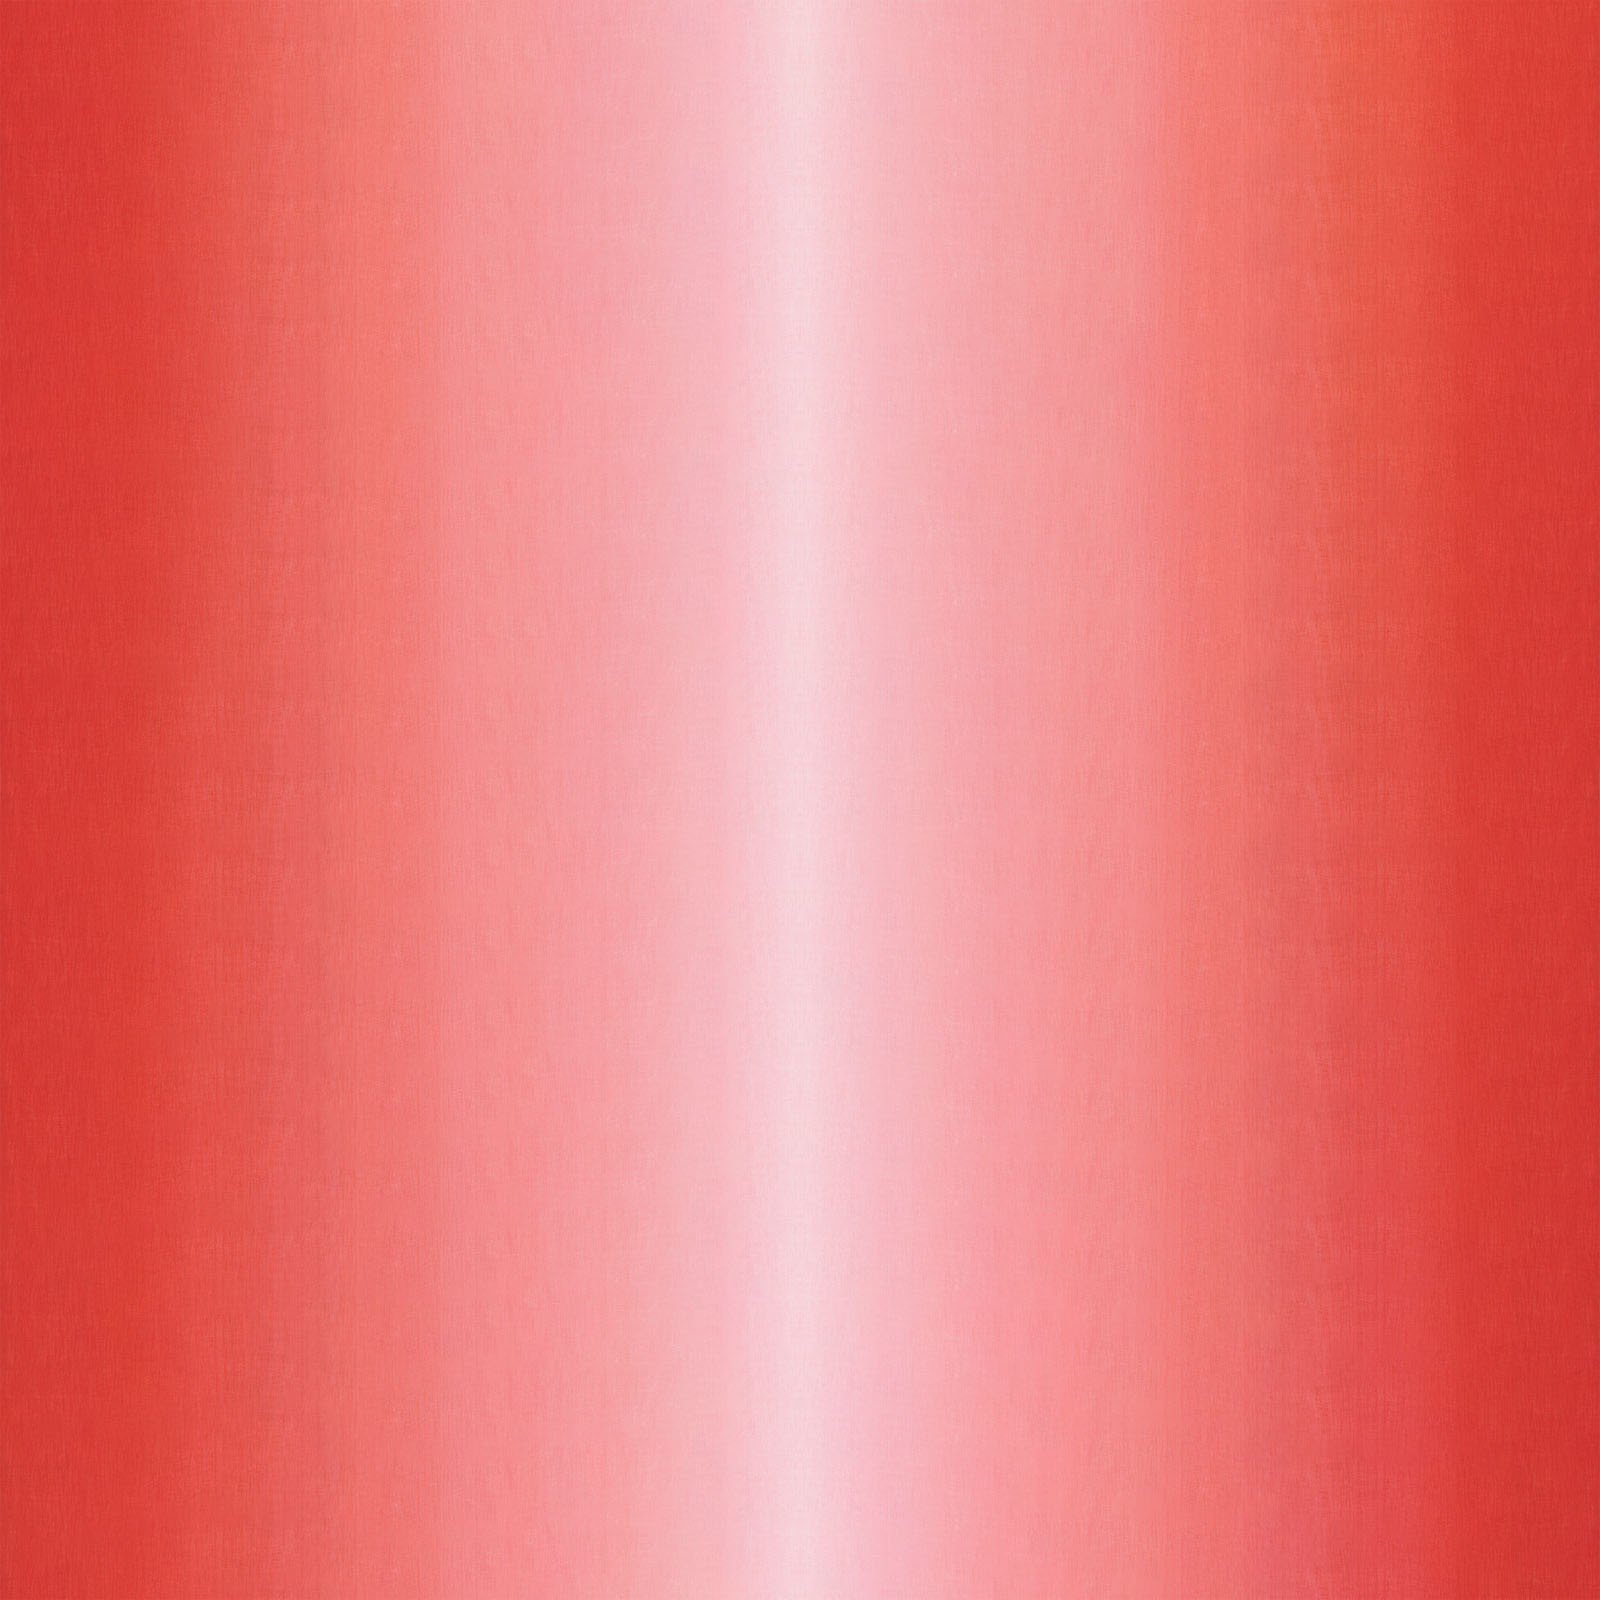 EESC-11216 C - GELATO OMBRE BY MAYWOOD CORAL TONAL